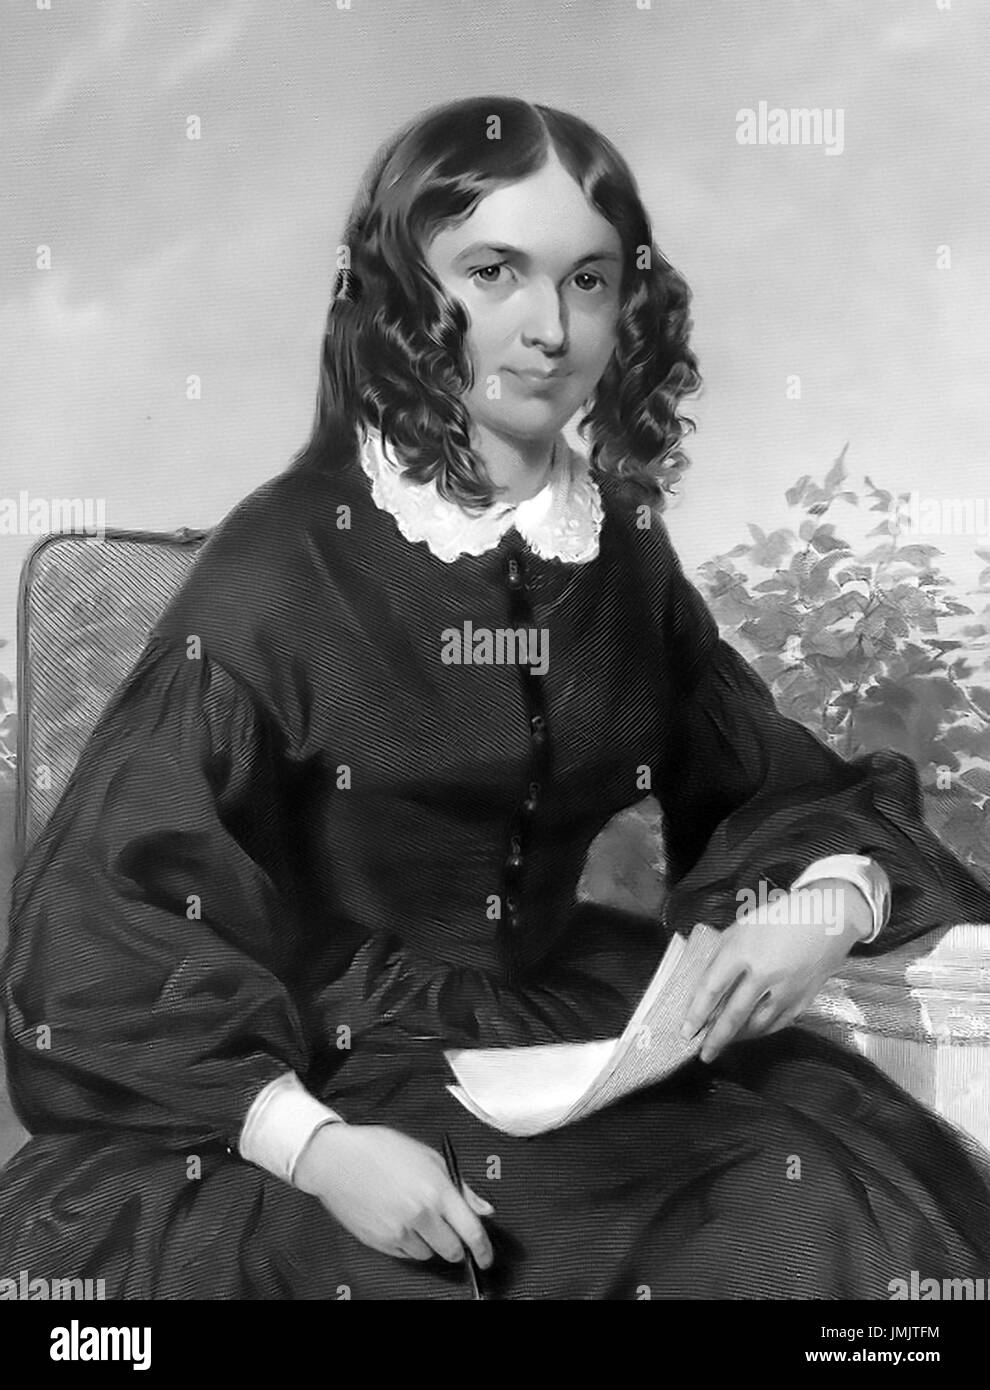 ELIZABETH BARRETT BROWNING (1806-1861) English poet and author about 1850 - Stock Image